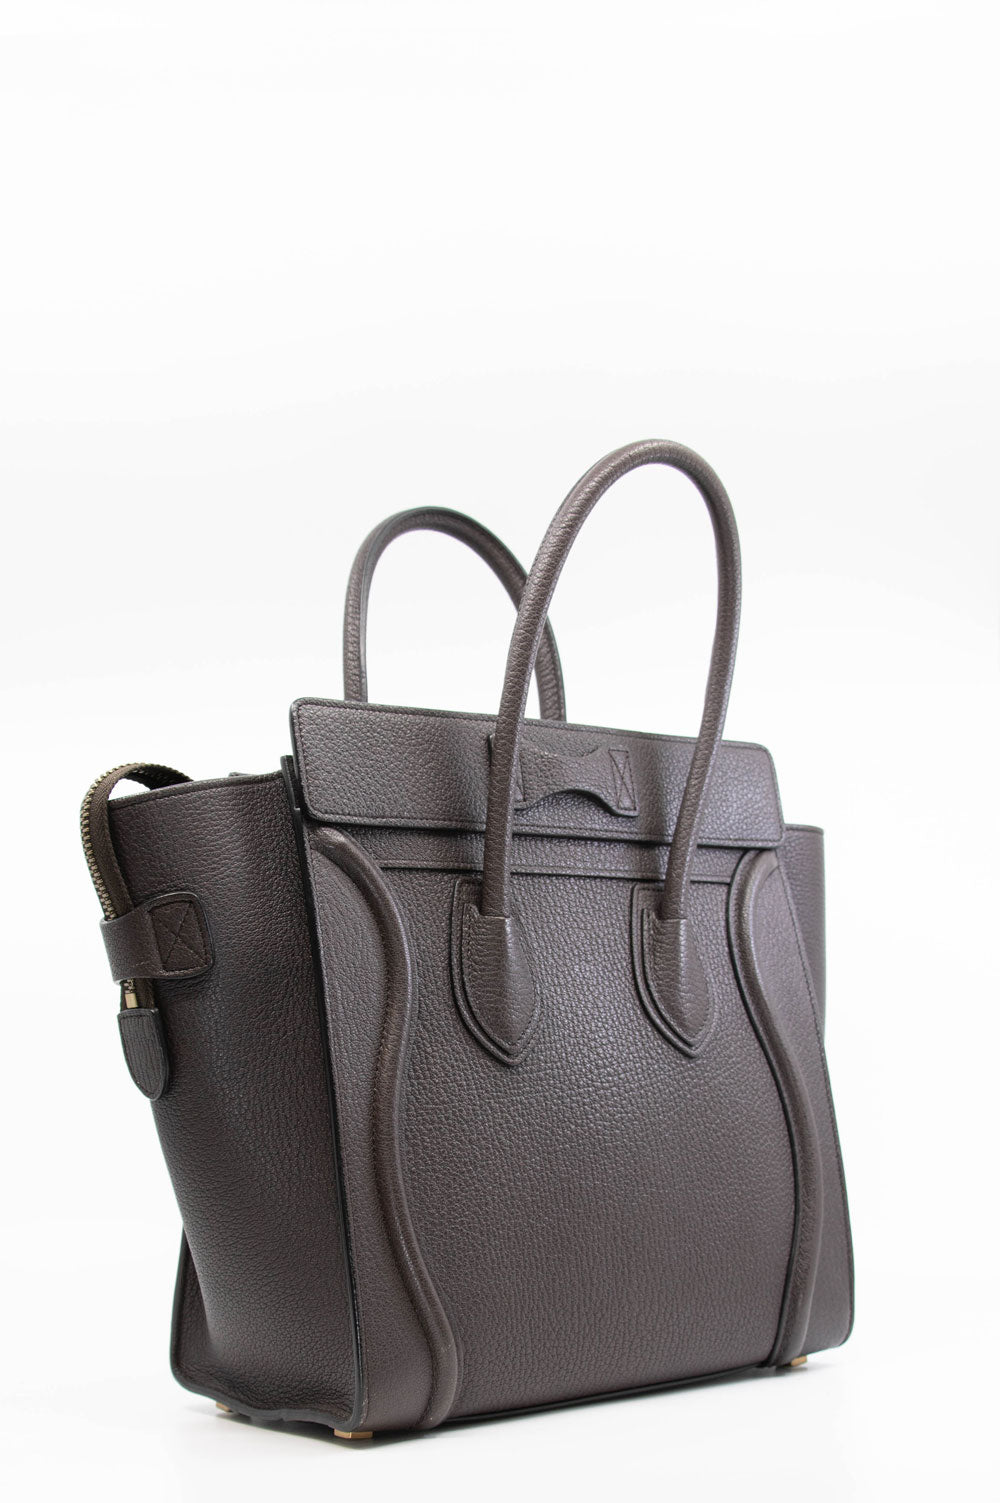 CÉLINE Micro Luggage Brown